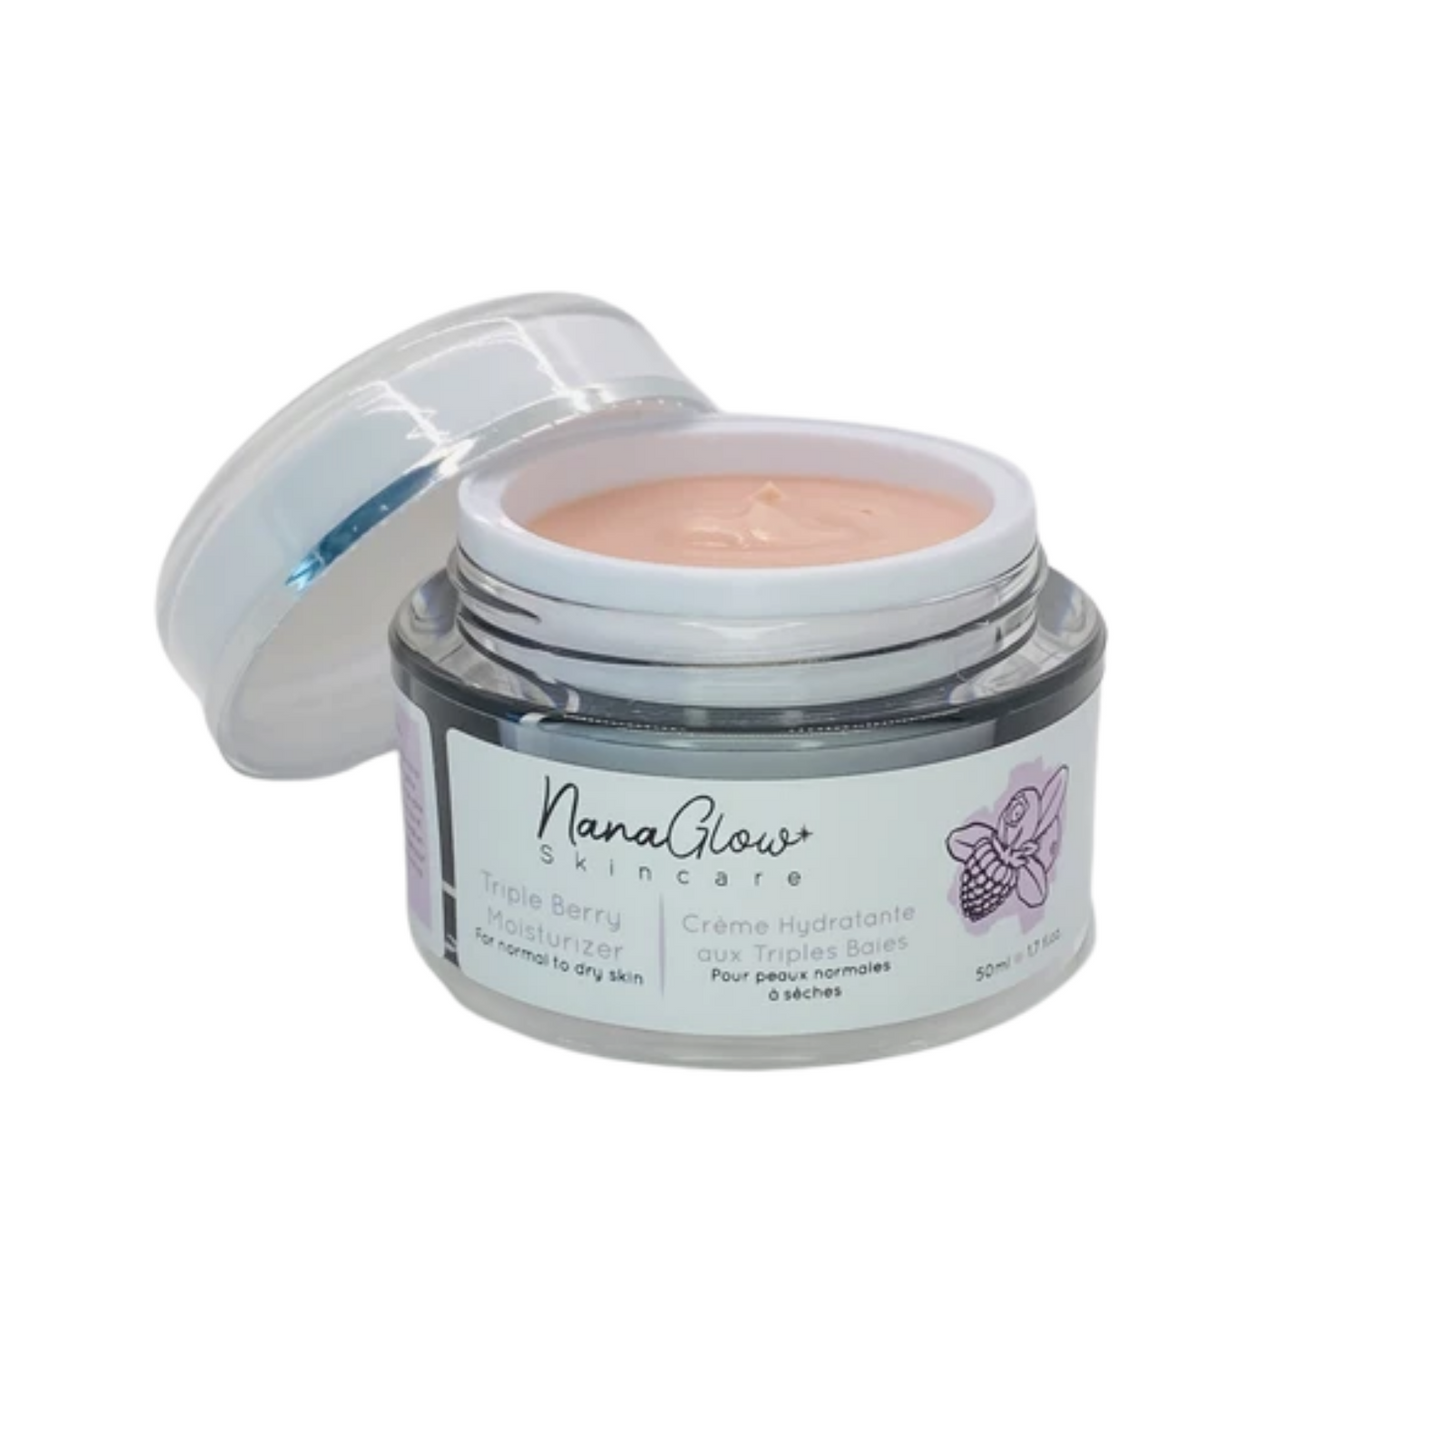 Triple Berry Gel Moisturizer for Normal to Dry Skin